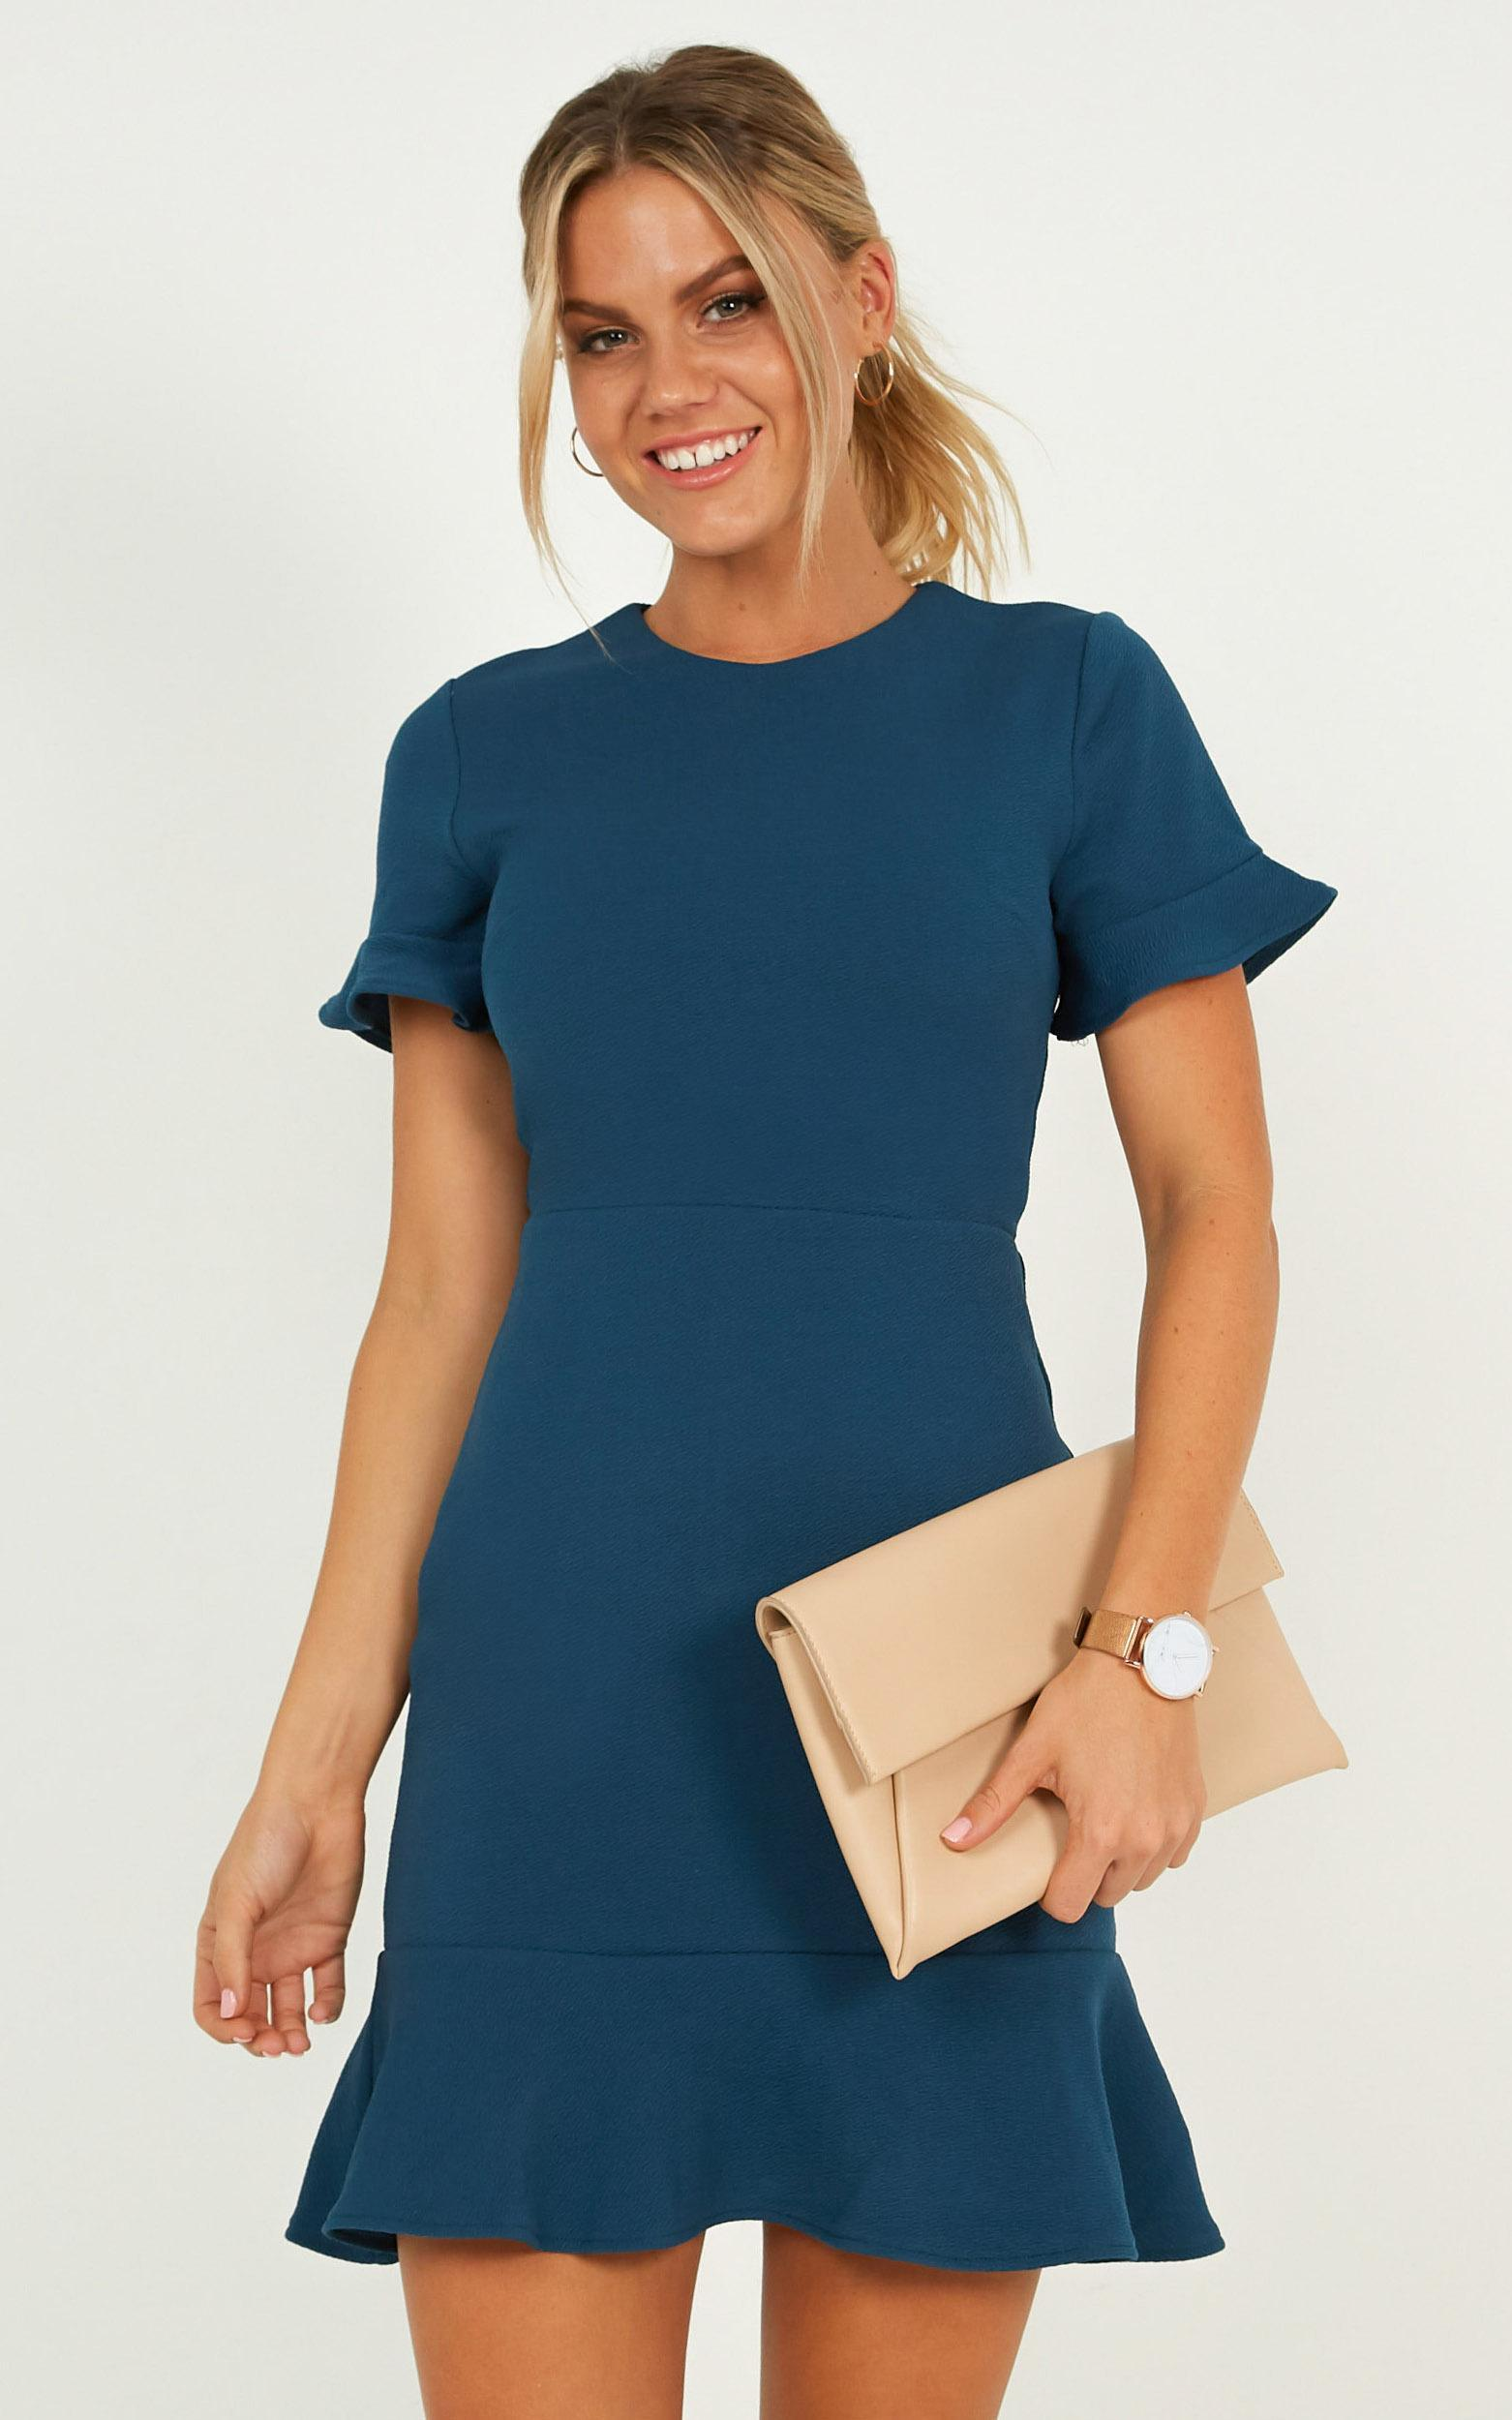 Authority Dress In teal - 20 (XXXXL), Green, hi-res image number null